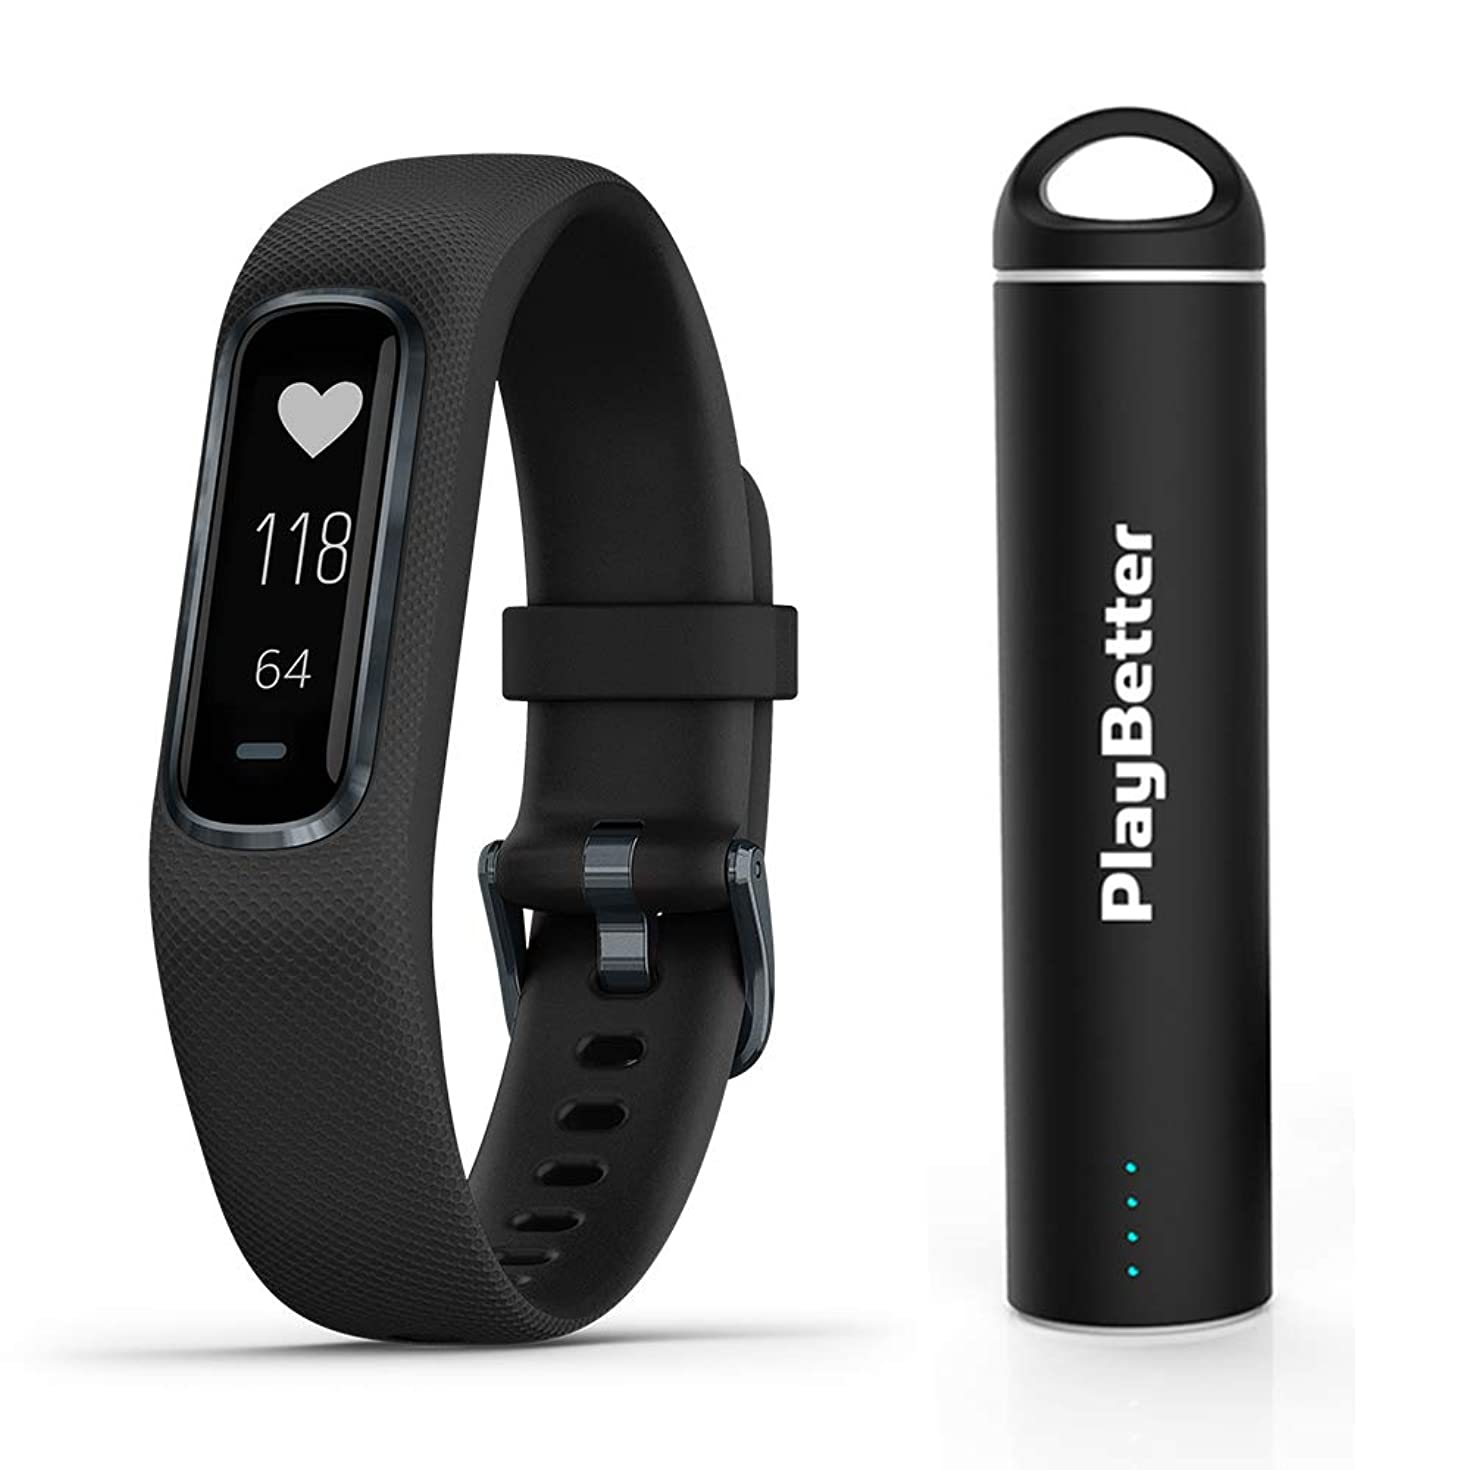 Garmin vivosmart 4 (Black/Midnight, Large) Smart Activity Tracker Power Bundle | with PlayBetter Portable Charger | Fitness Activity Tracker | Heart Rate